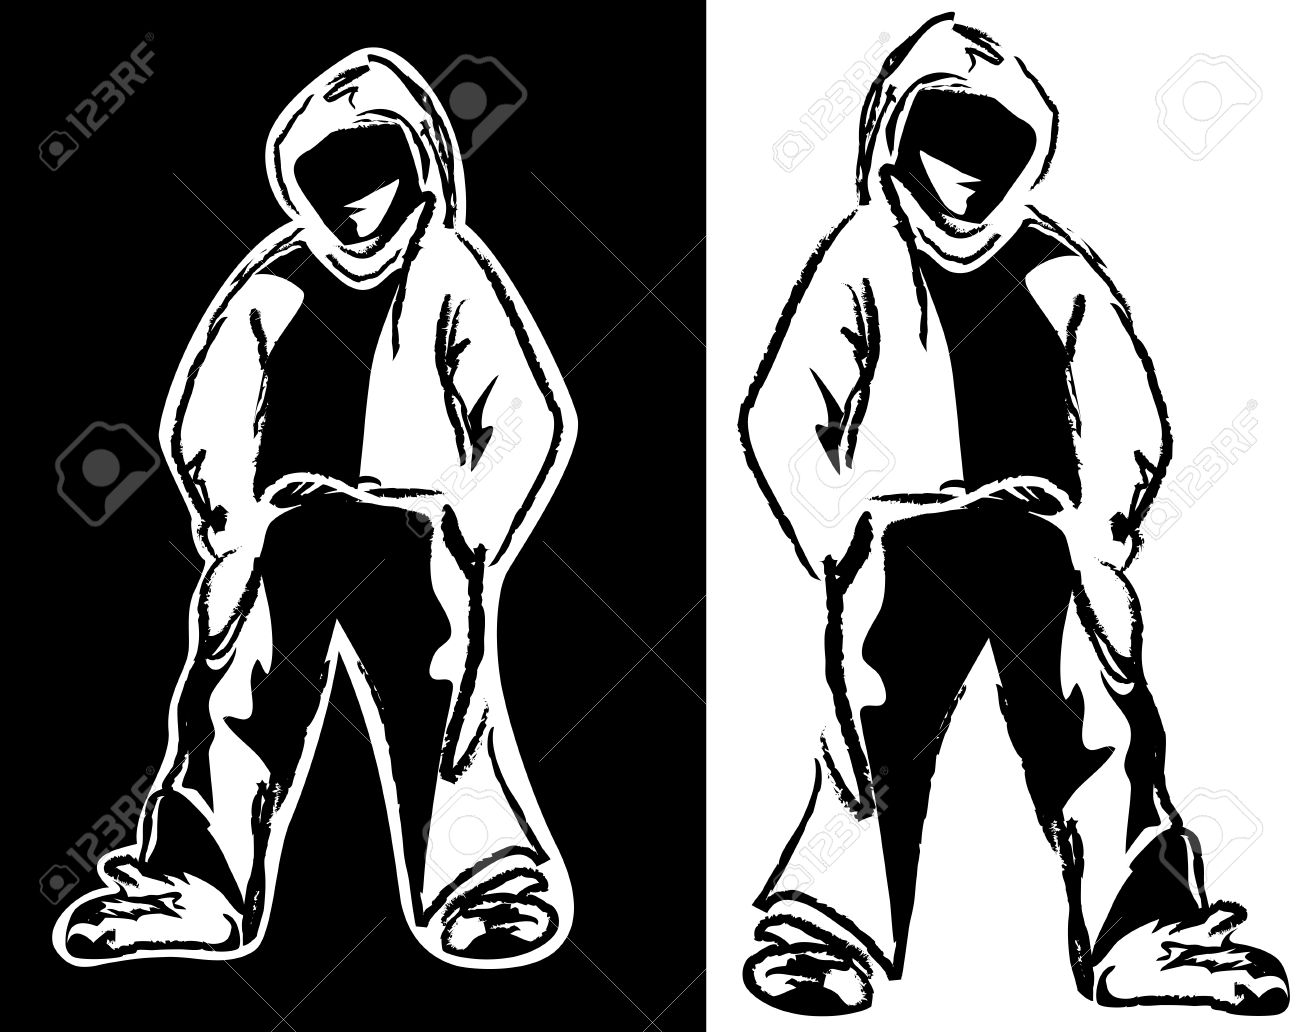 urban street style guy - young man wearing hoodie black and white vector design - 34347262